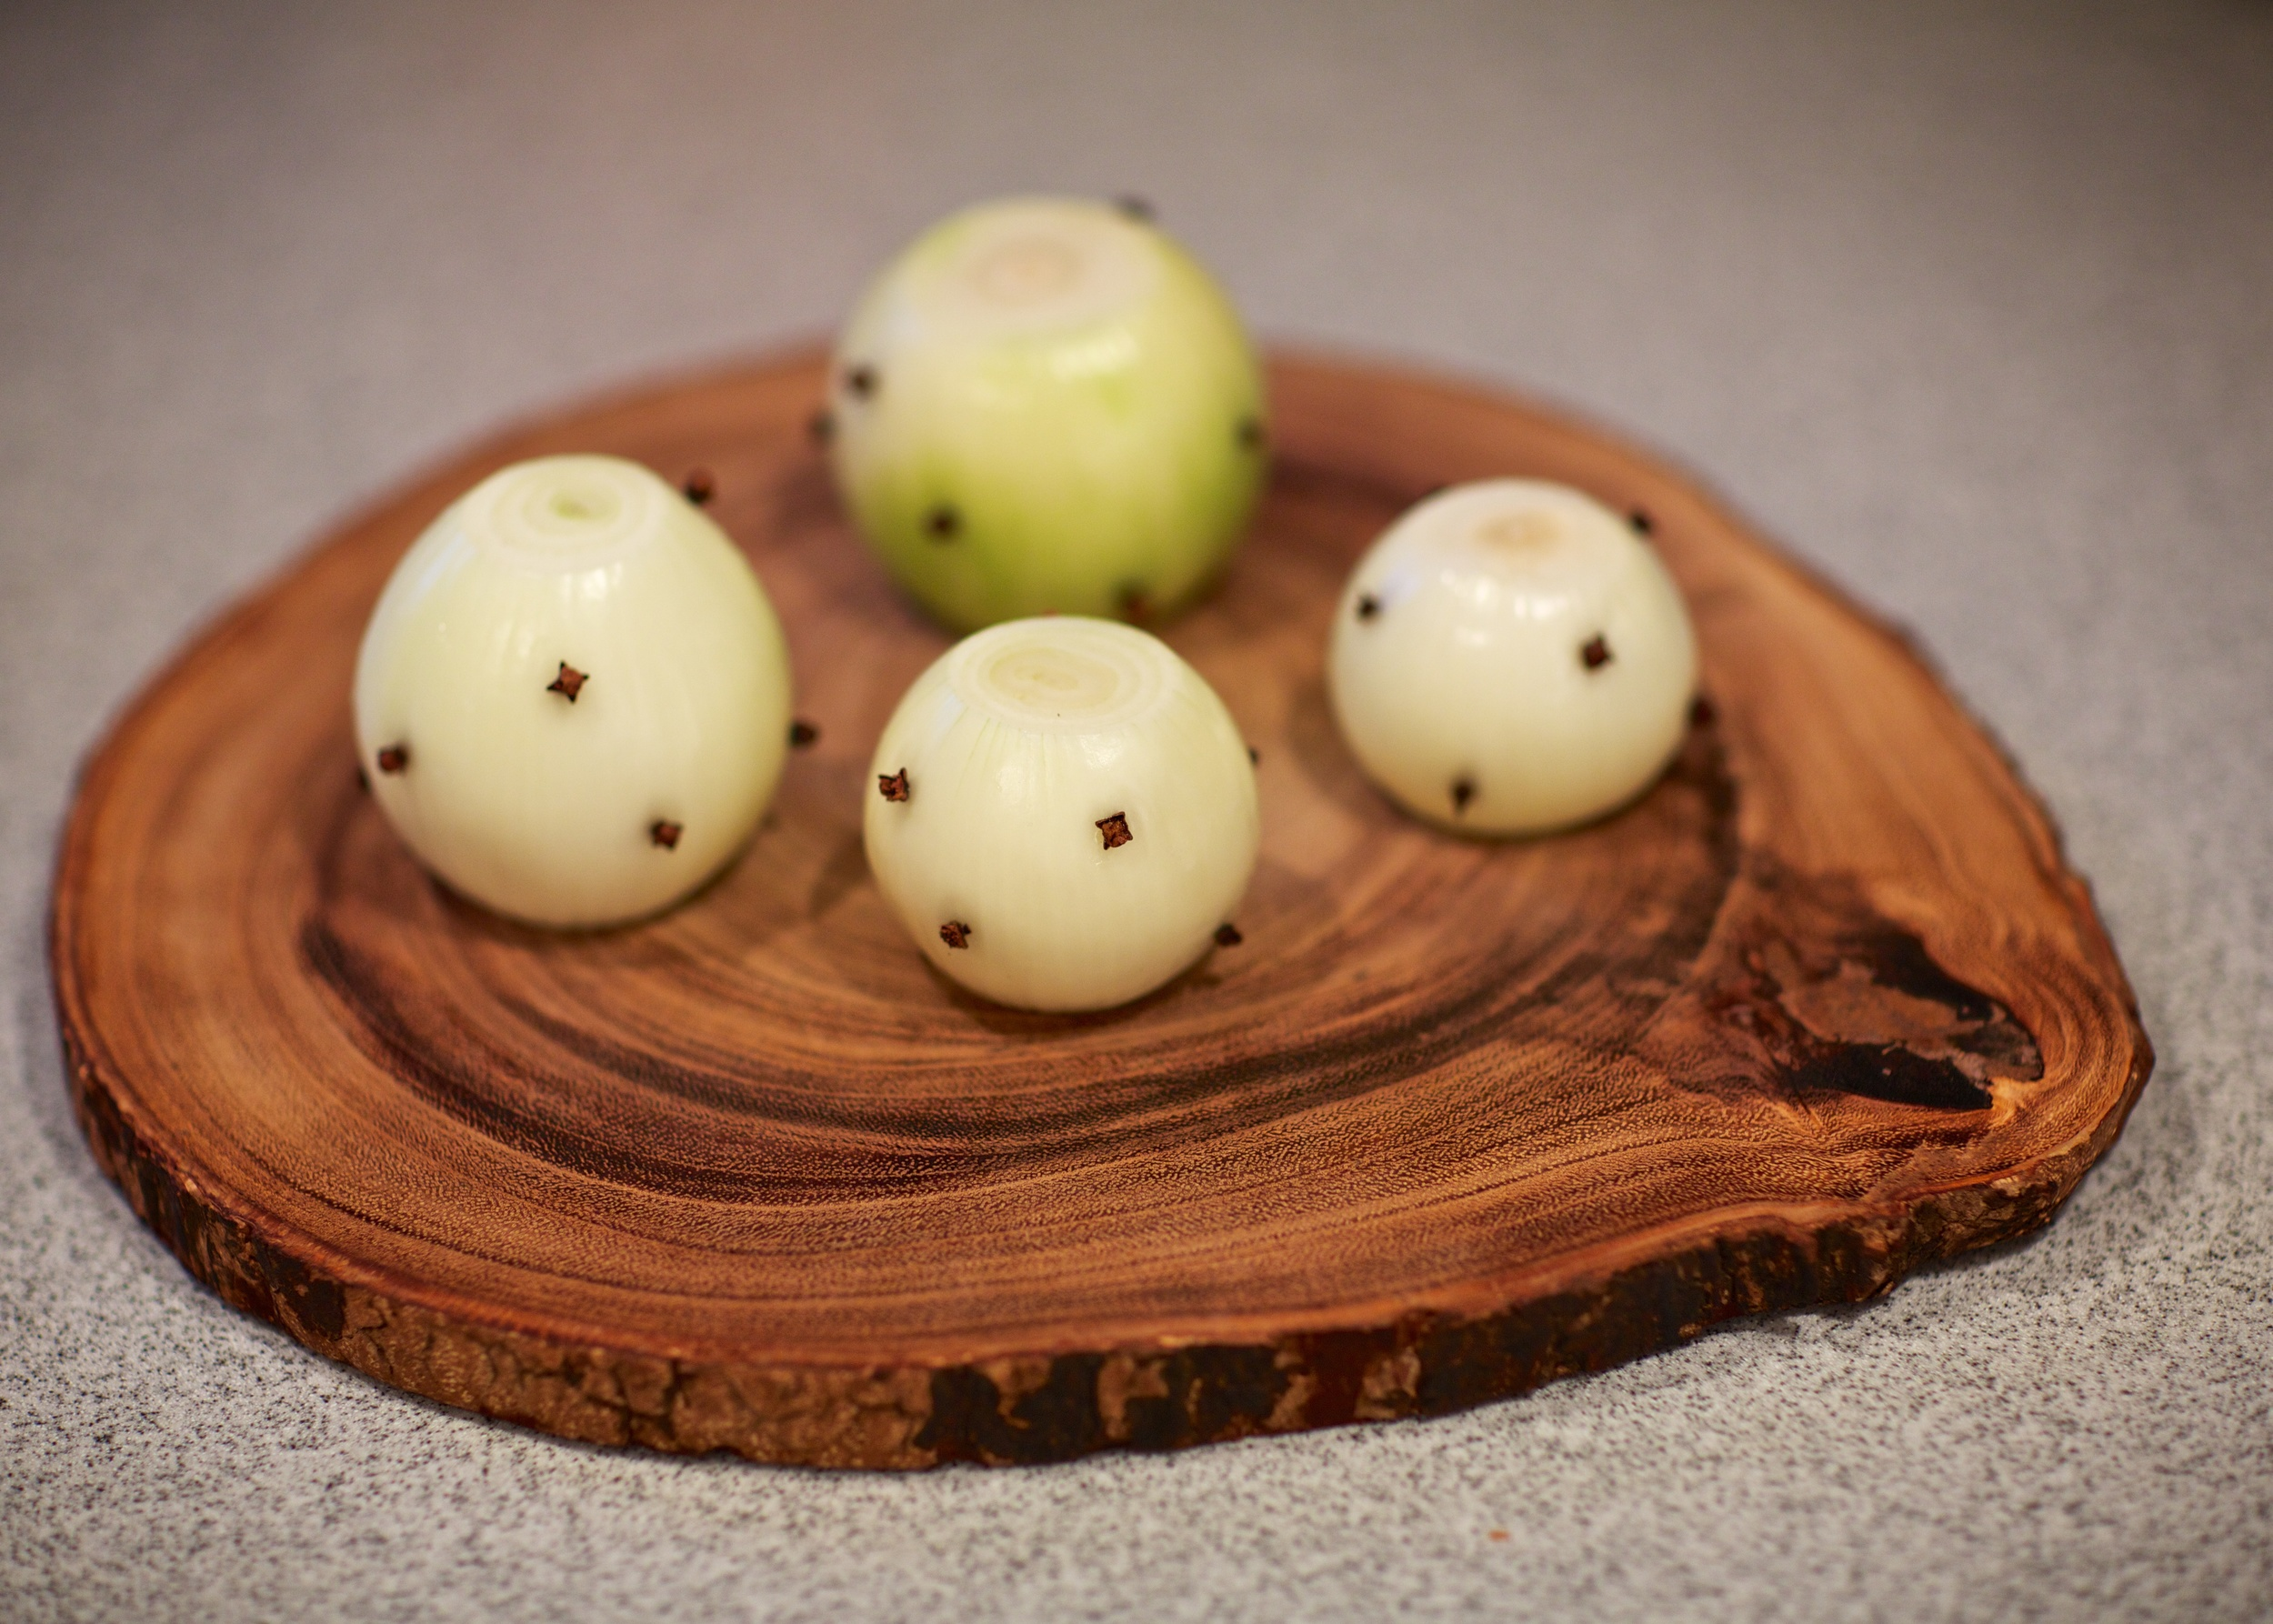 Onions with cloves